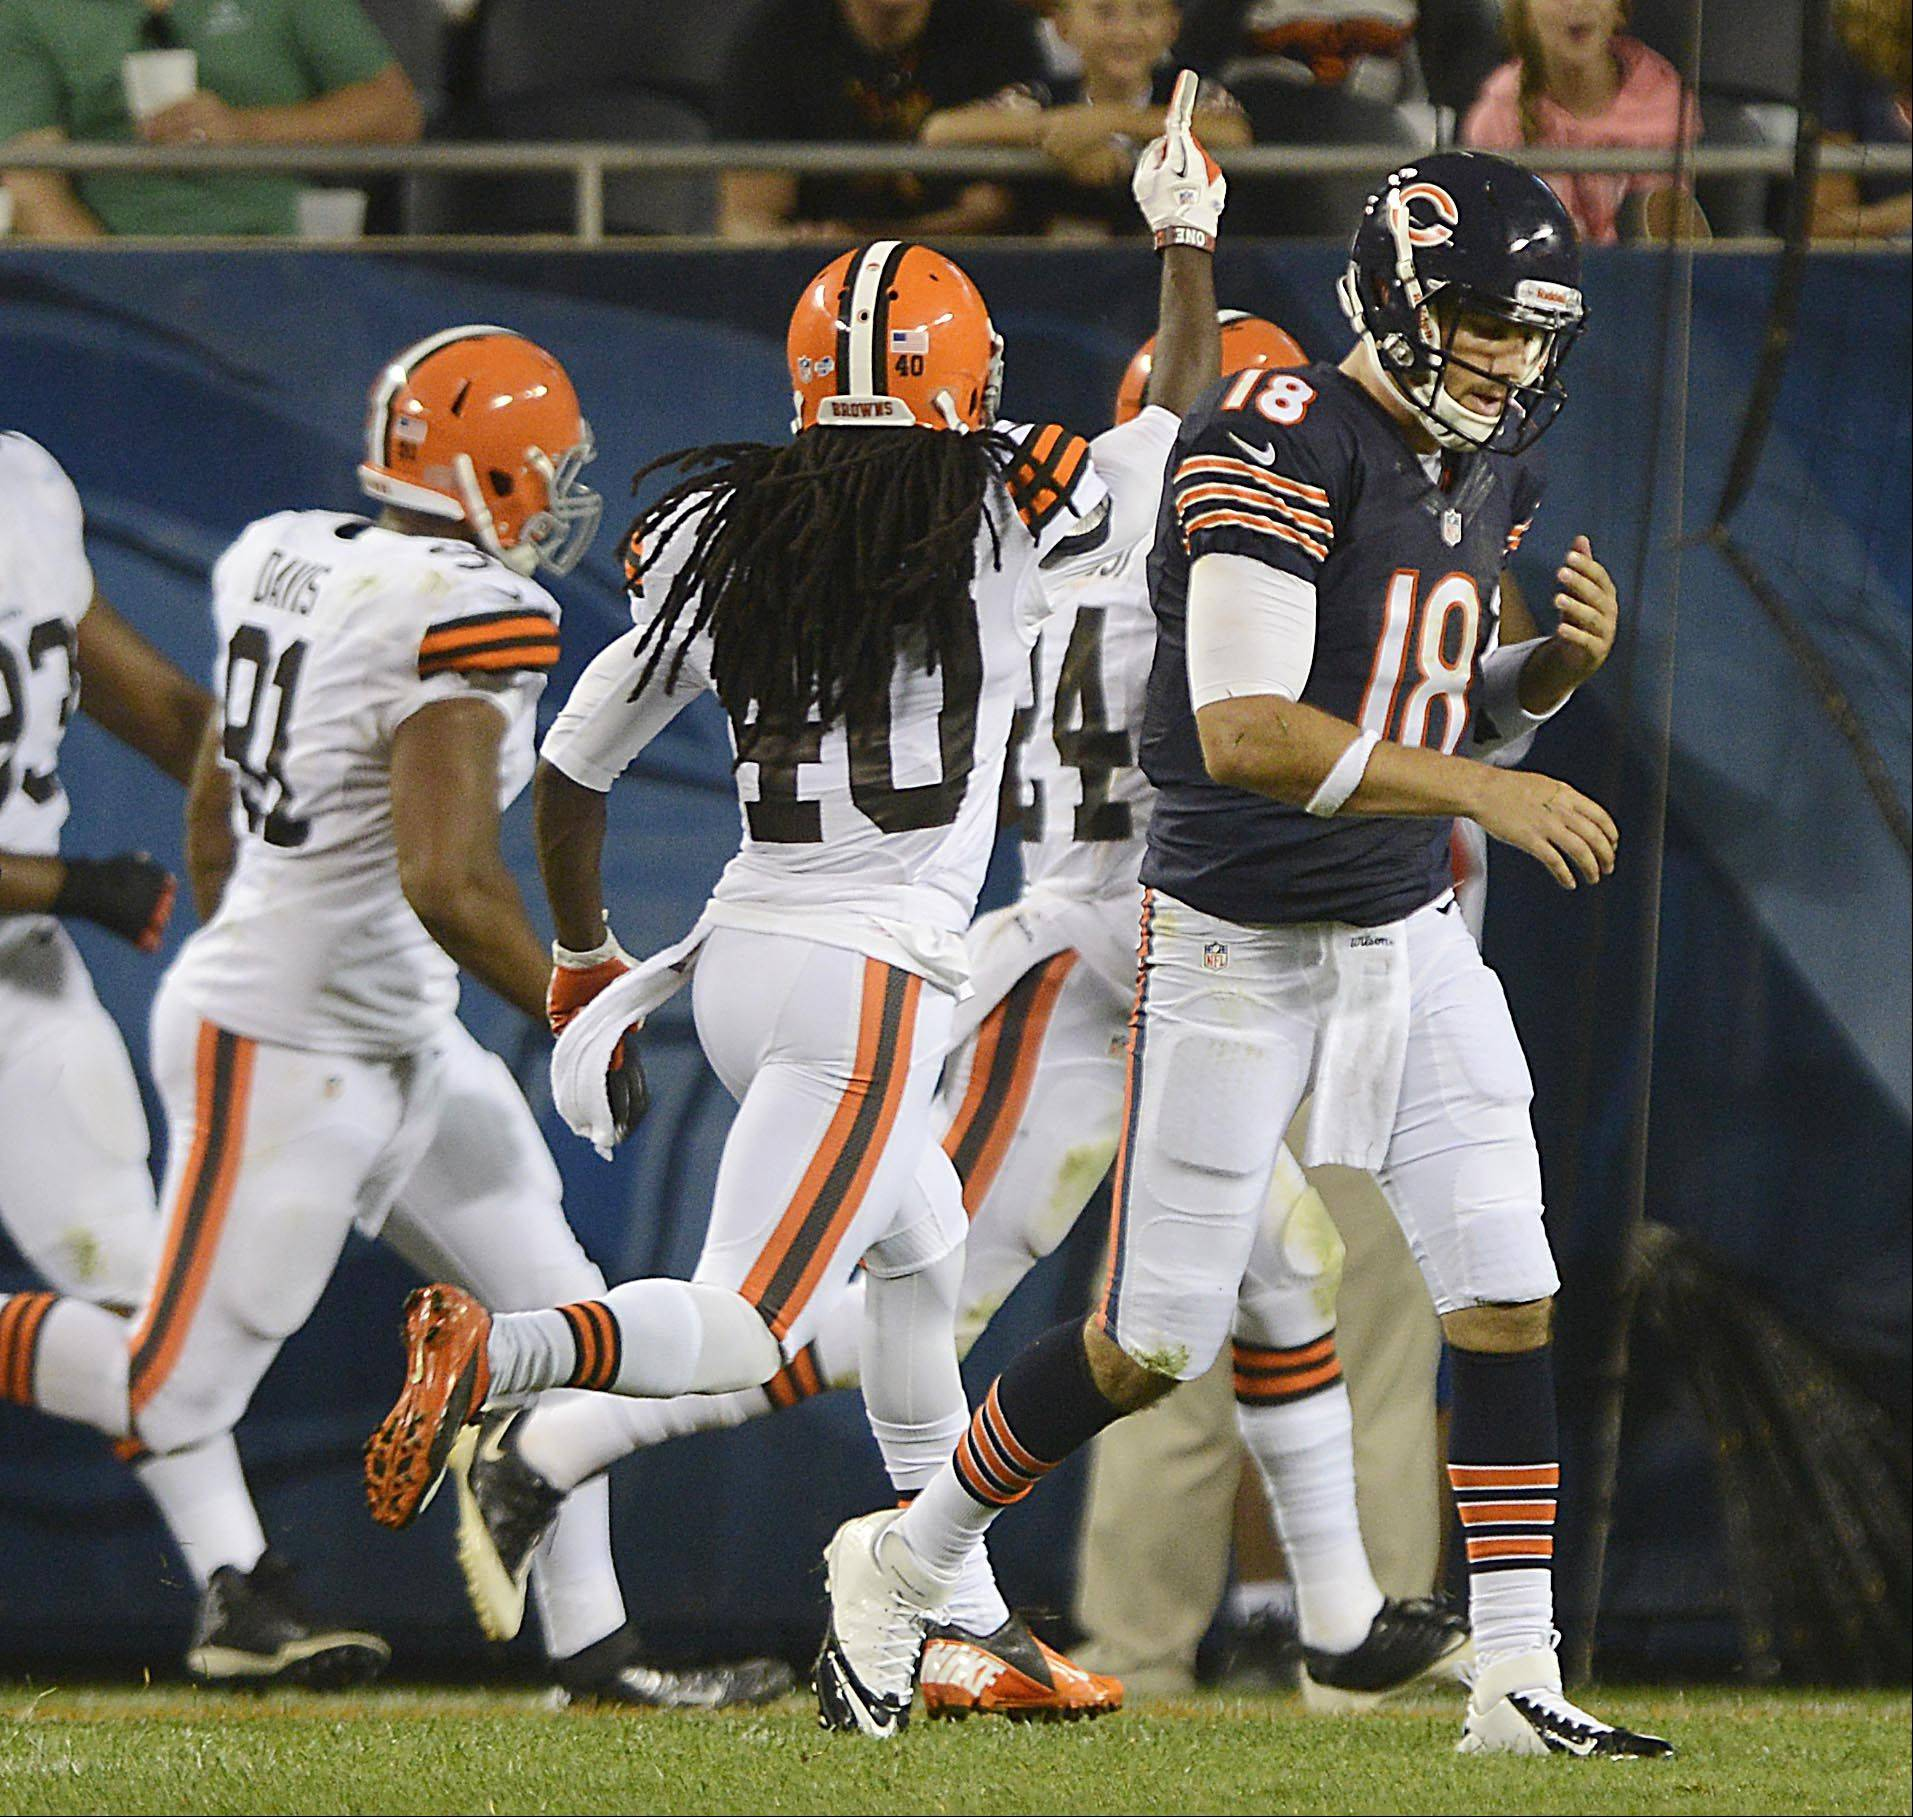 Chicago Bears quarterback Trent Edwards leaves the field after throwing an interception.